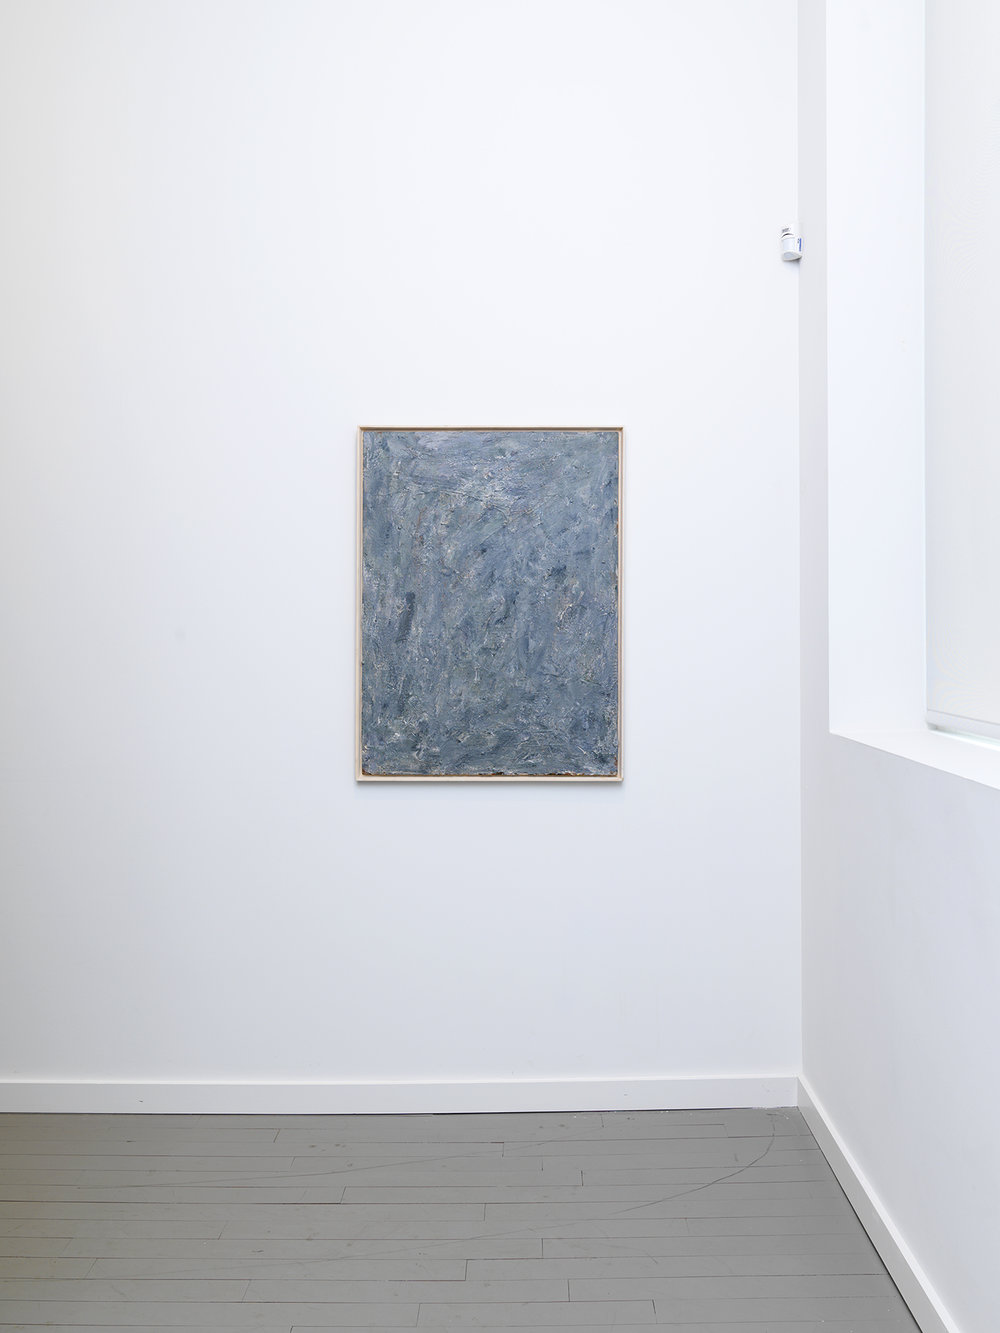 Straw, 1982 Oil on board 40 x 30 inches